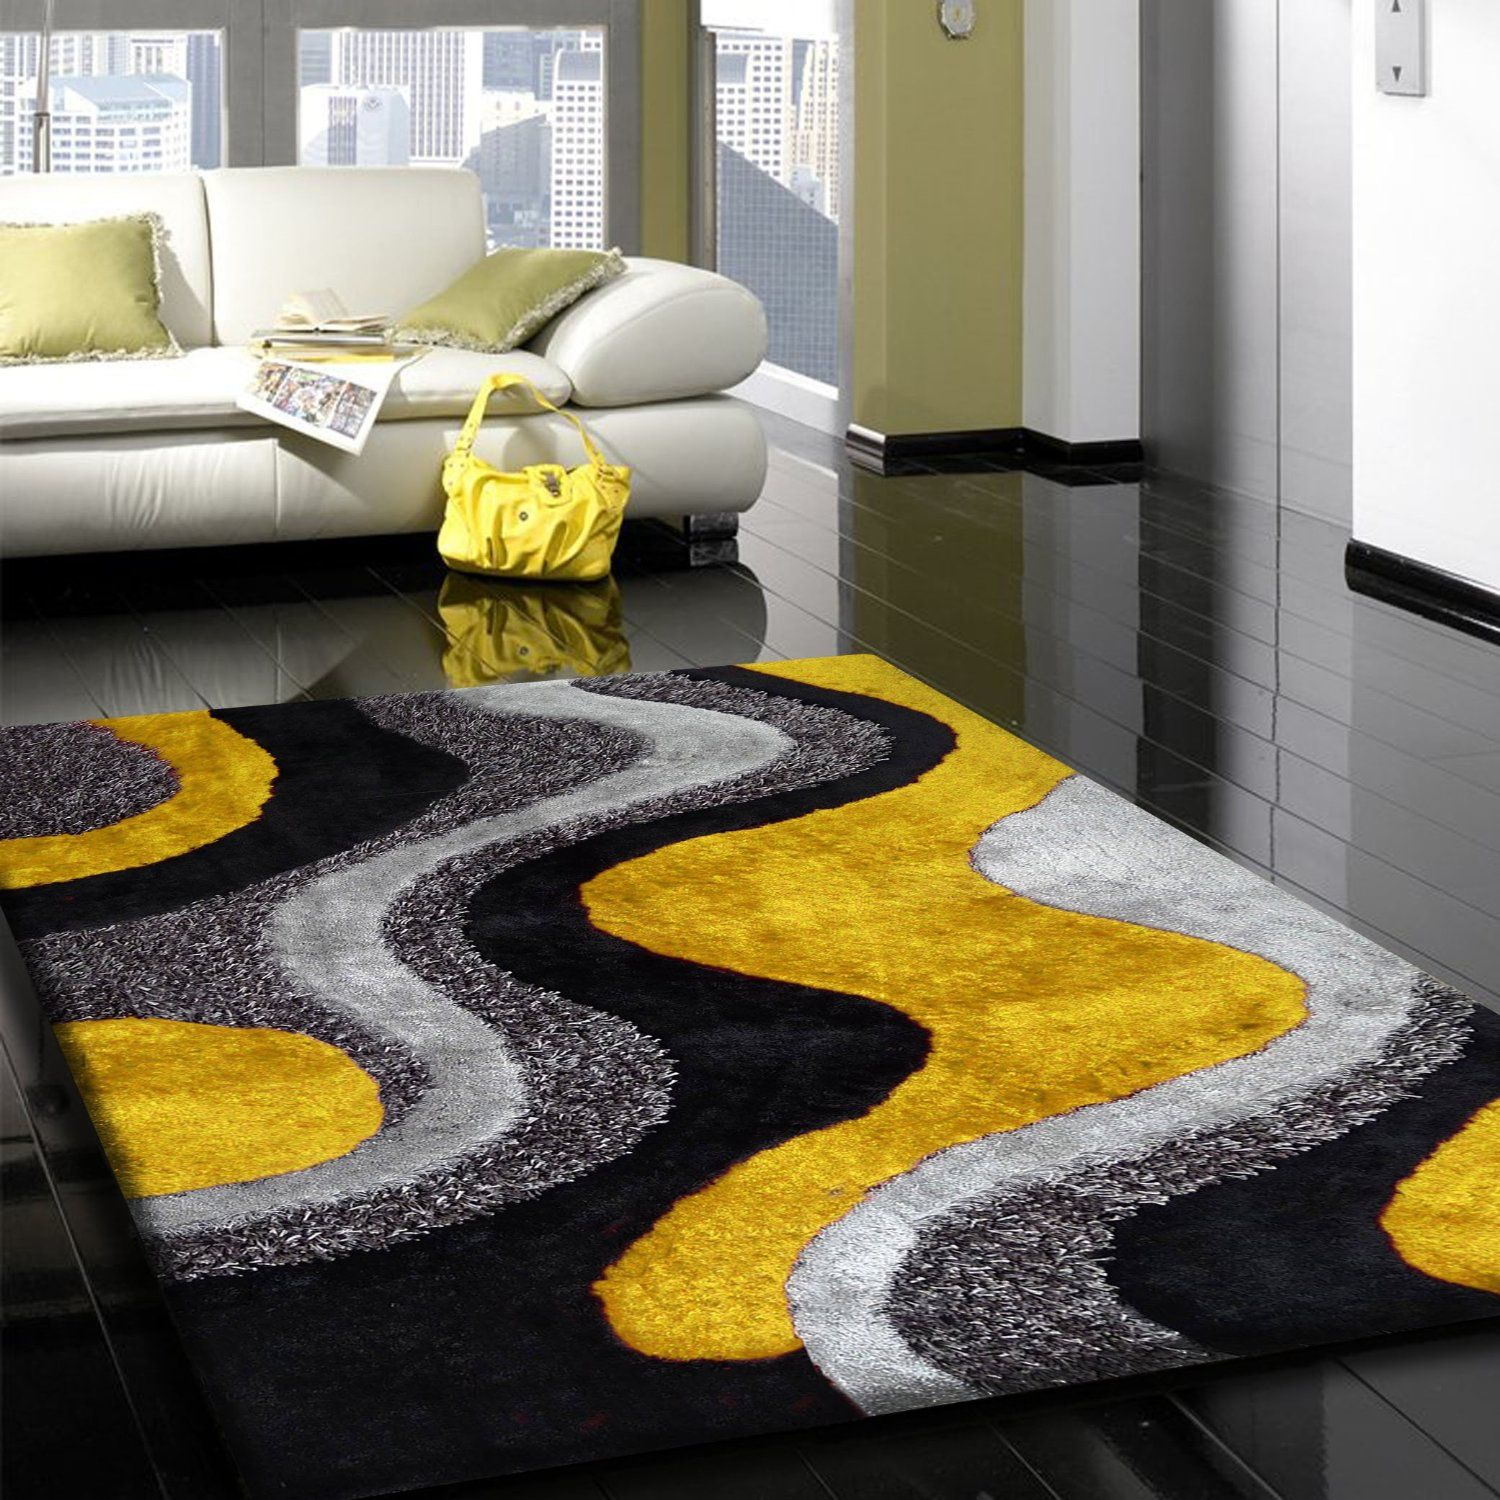 Silk Grey Yellow Carpet Floor Beautiful Spacios Amp Chic